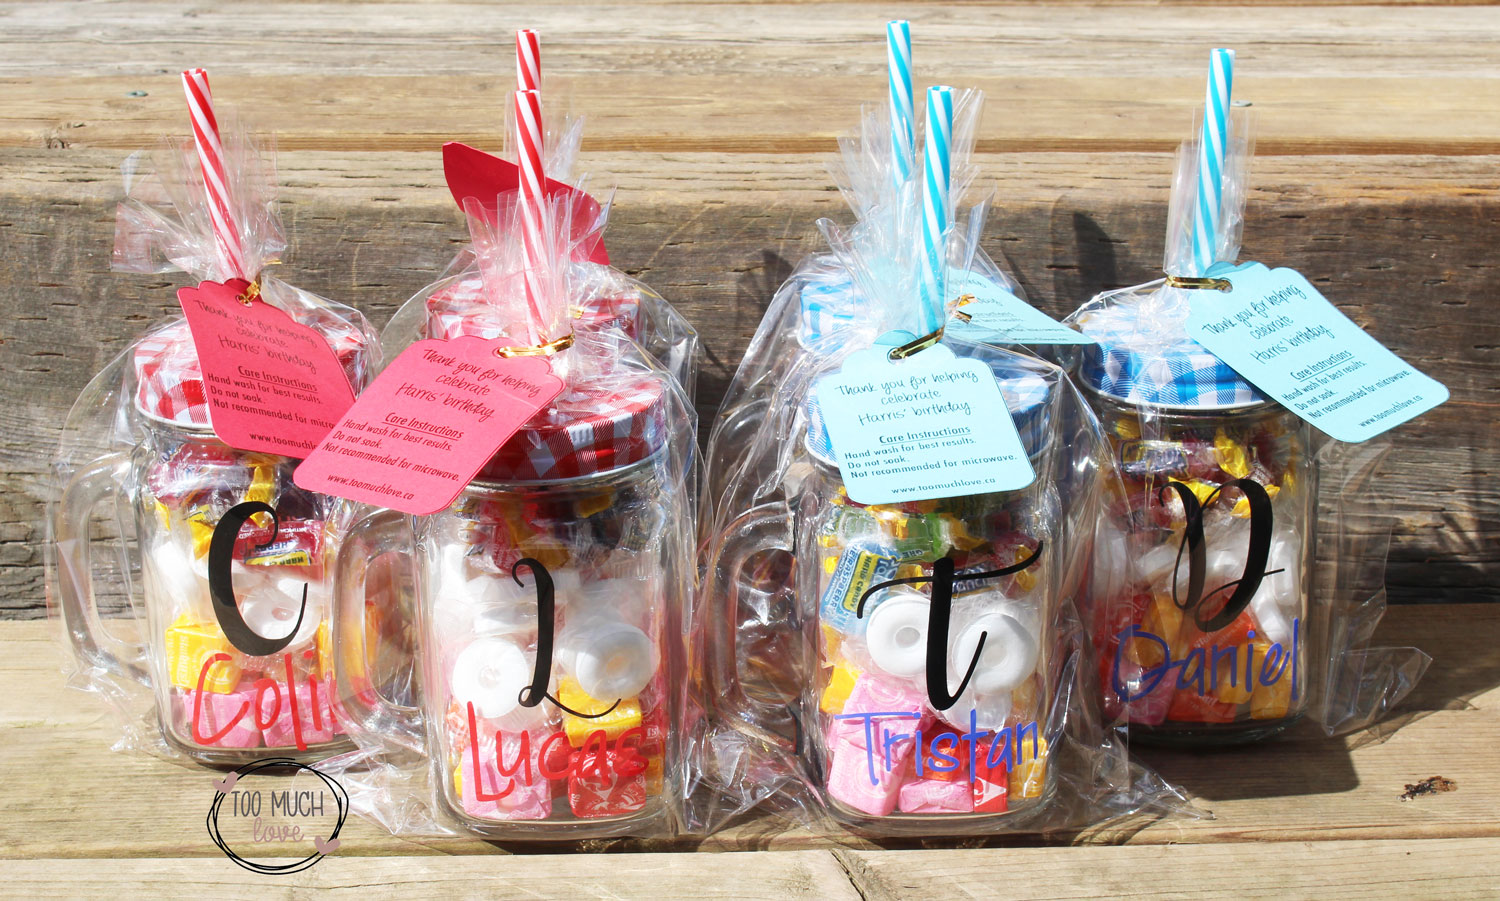 Easy To Make Mason Jar Party Favors Using Your Cricut Too Much Love